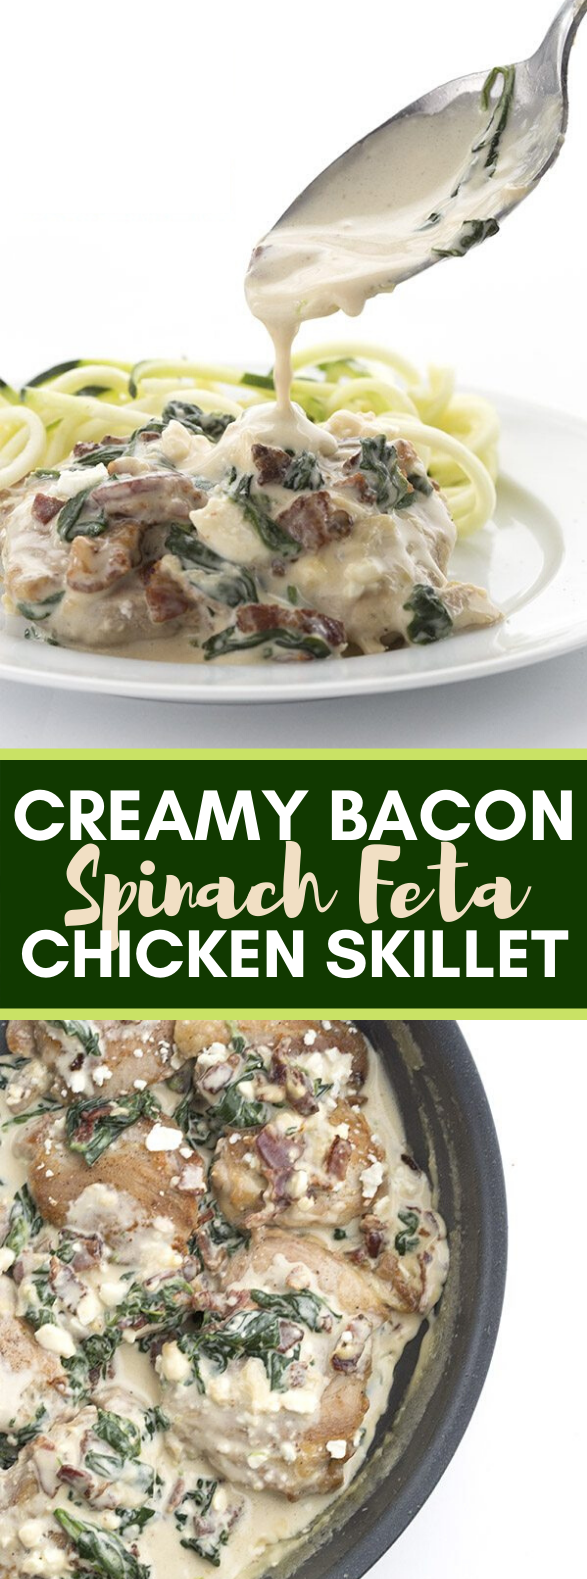 CREAMY BACON SPINACH FETA CHICKEN SKILLET #ketodiet #lowcarb